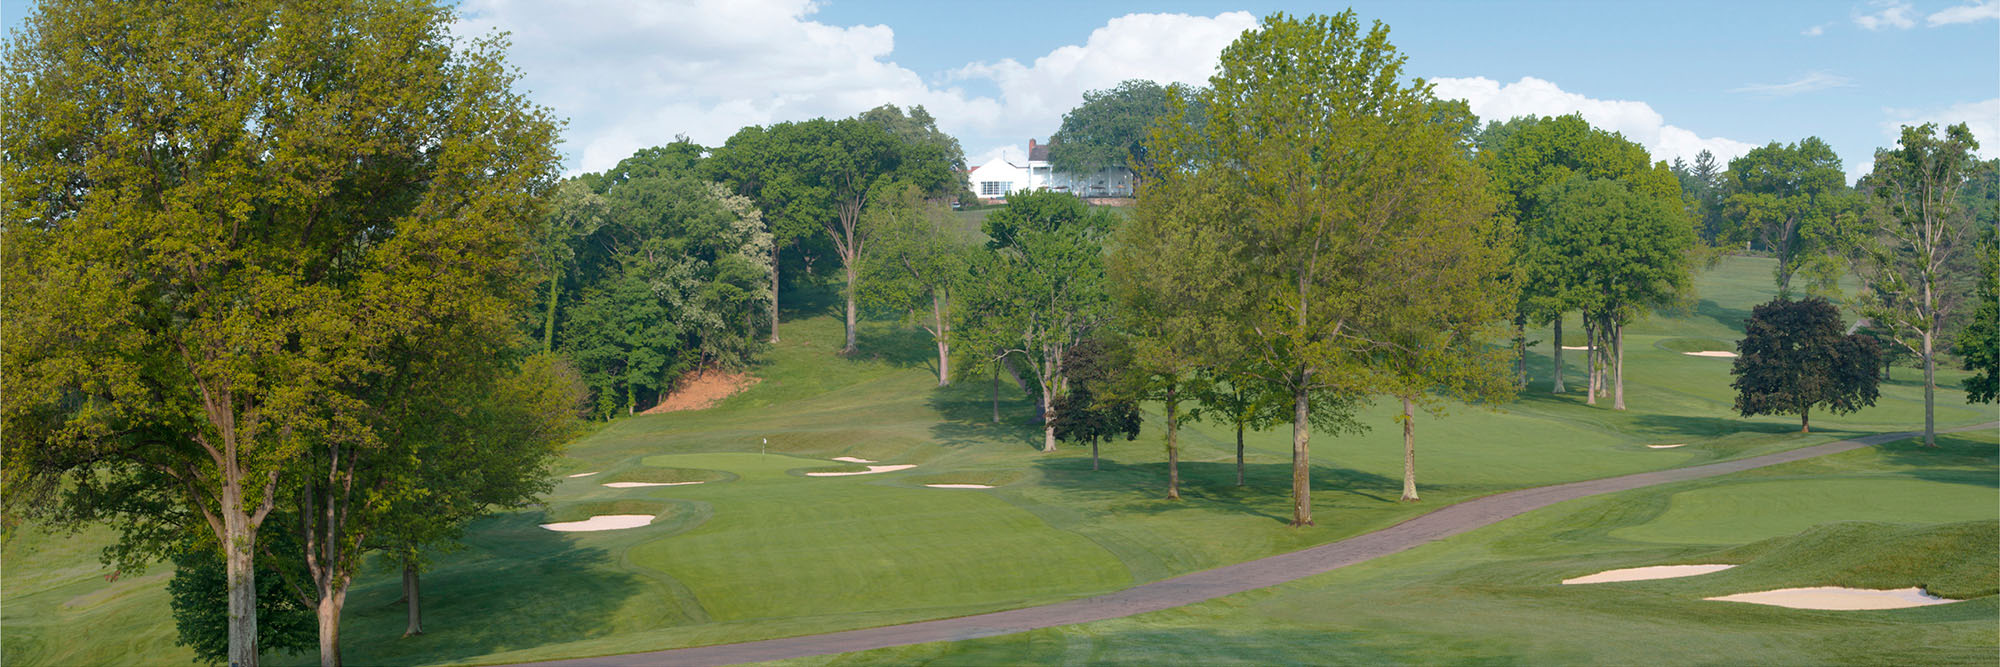 Golf Course Image - Pittsburgh Field Club No. 2